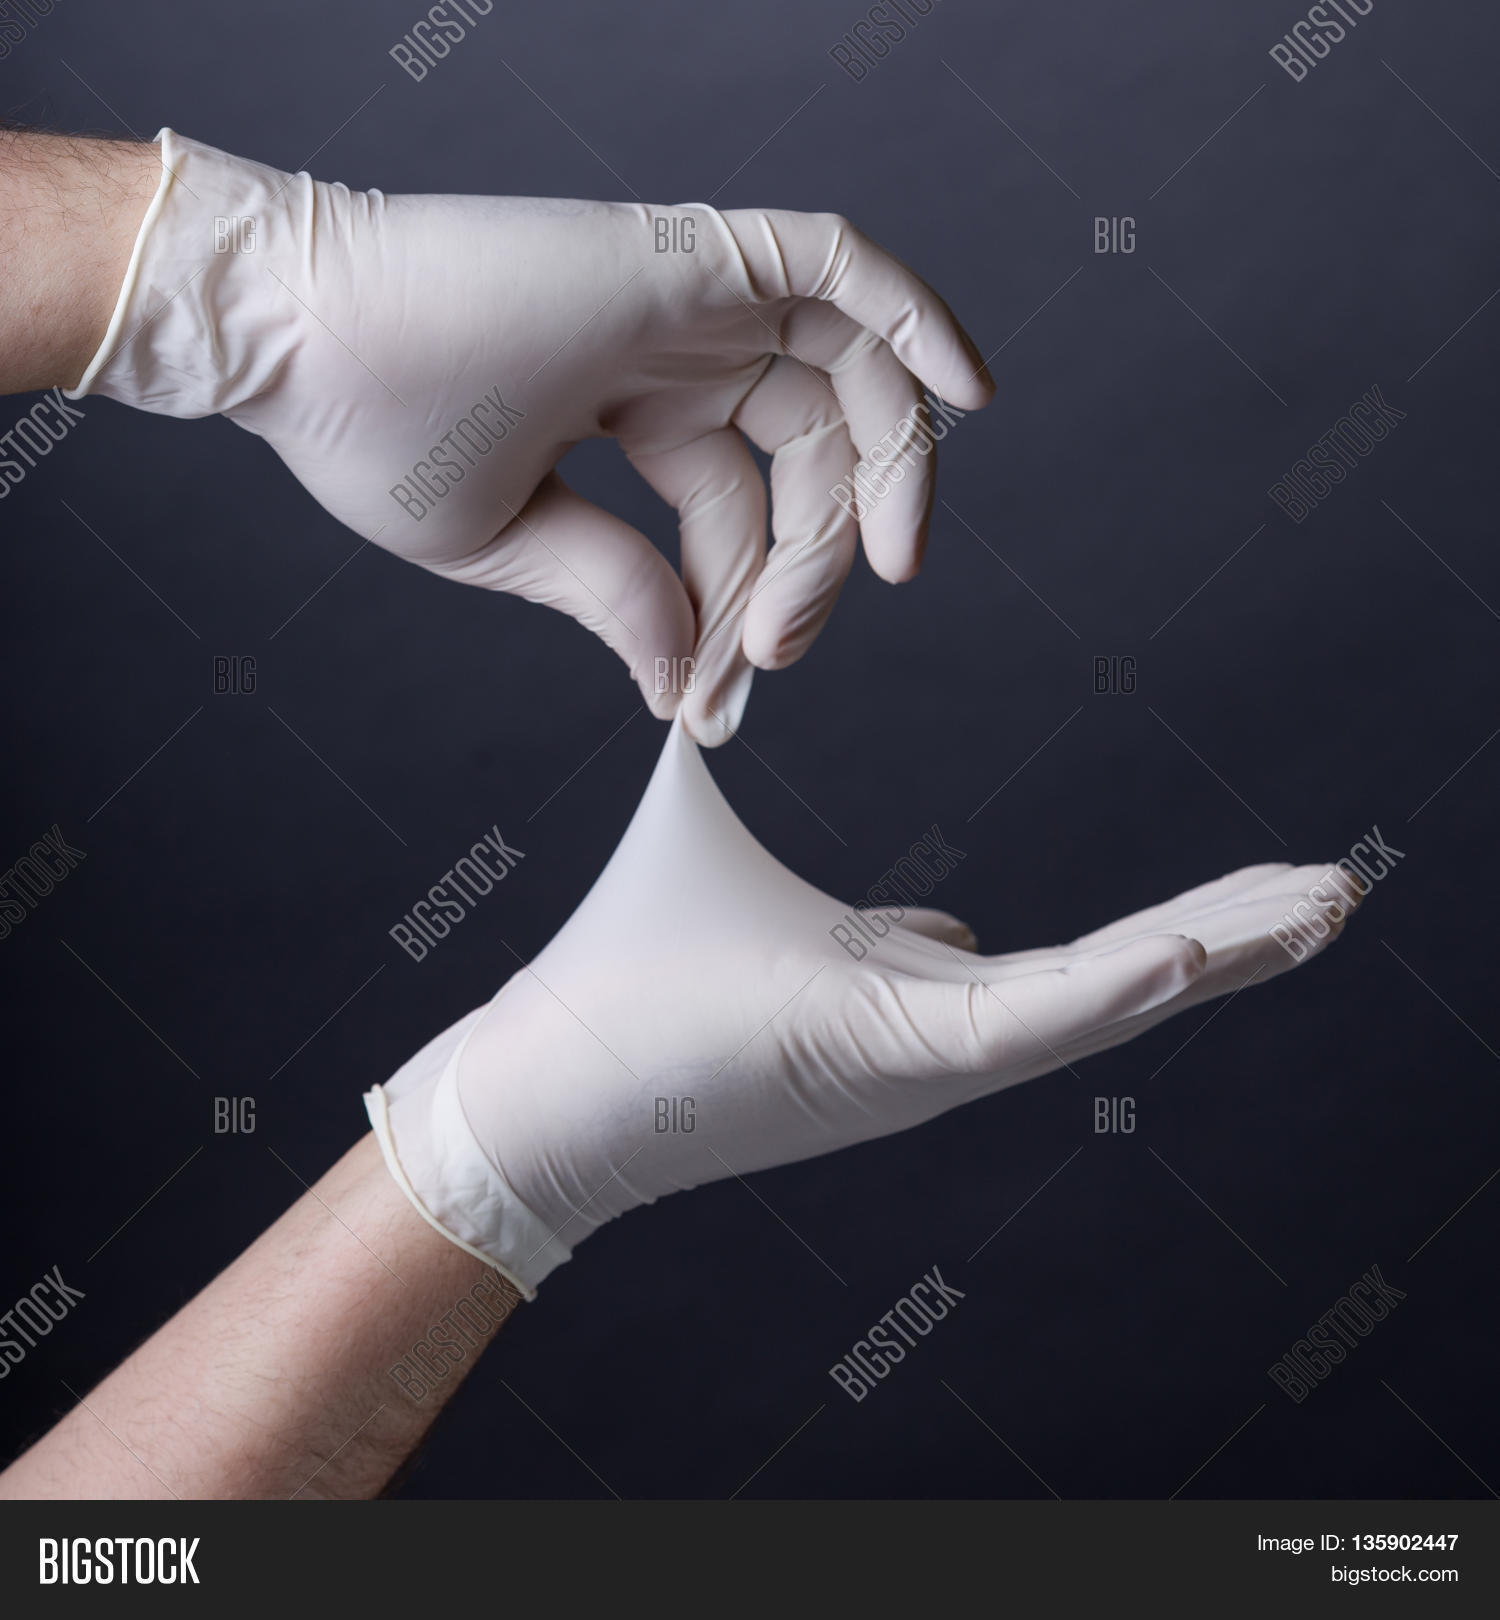 Doctor putting hand in male ass